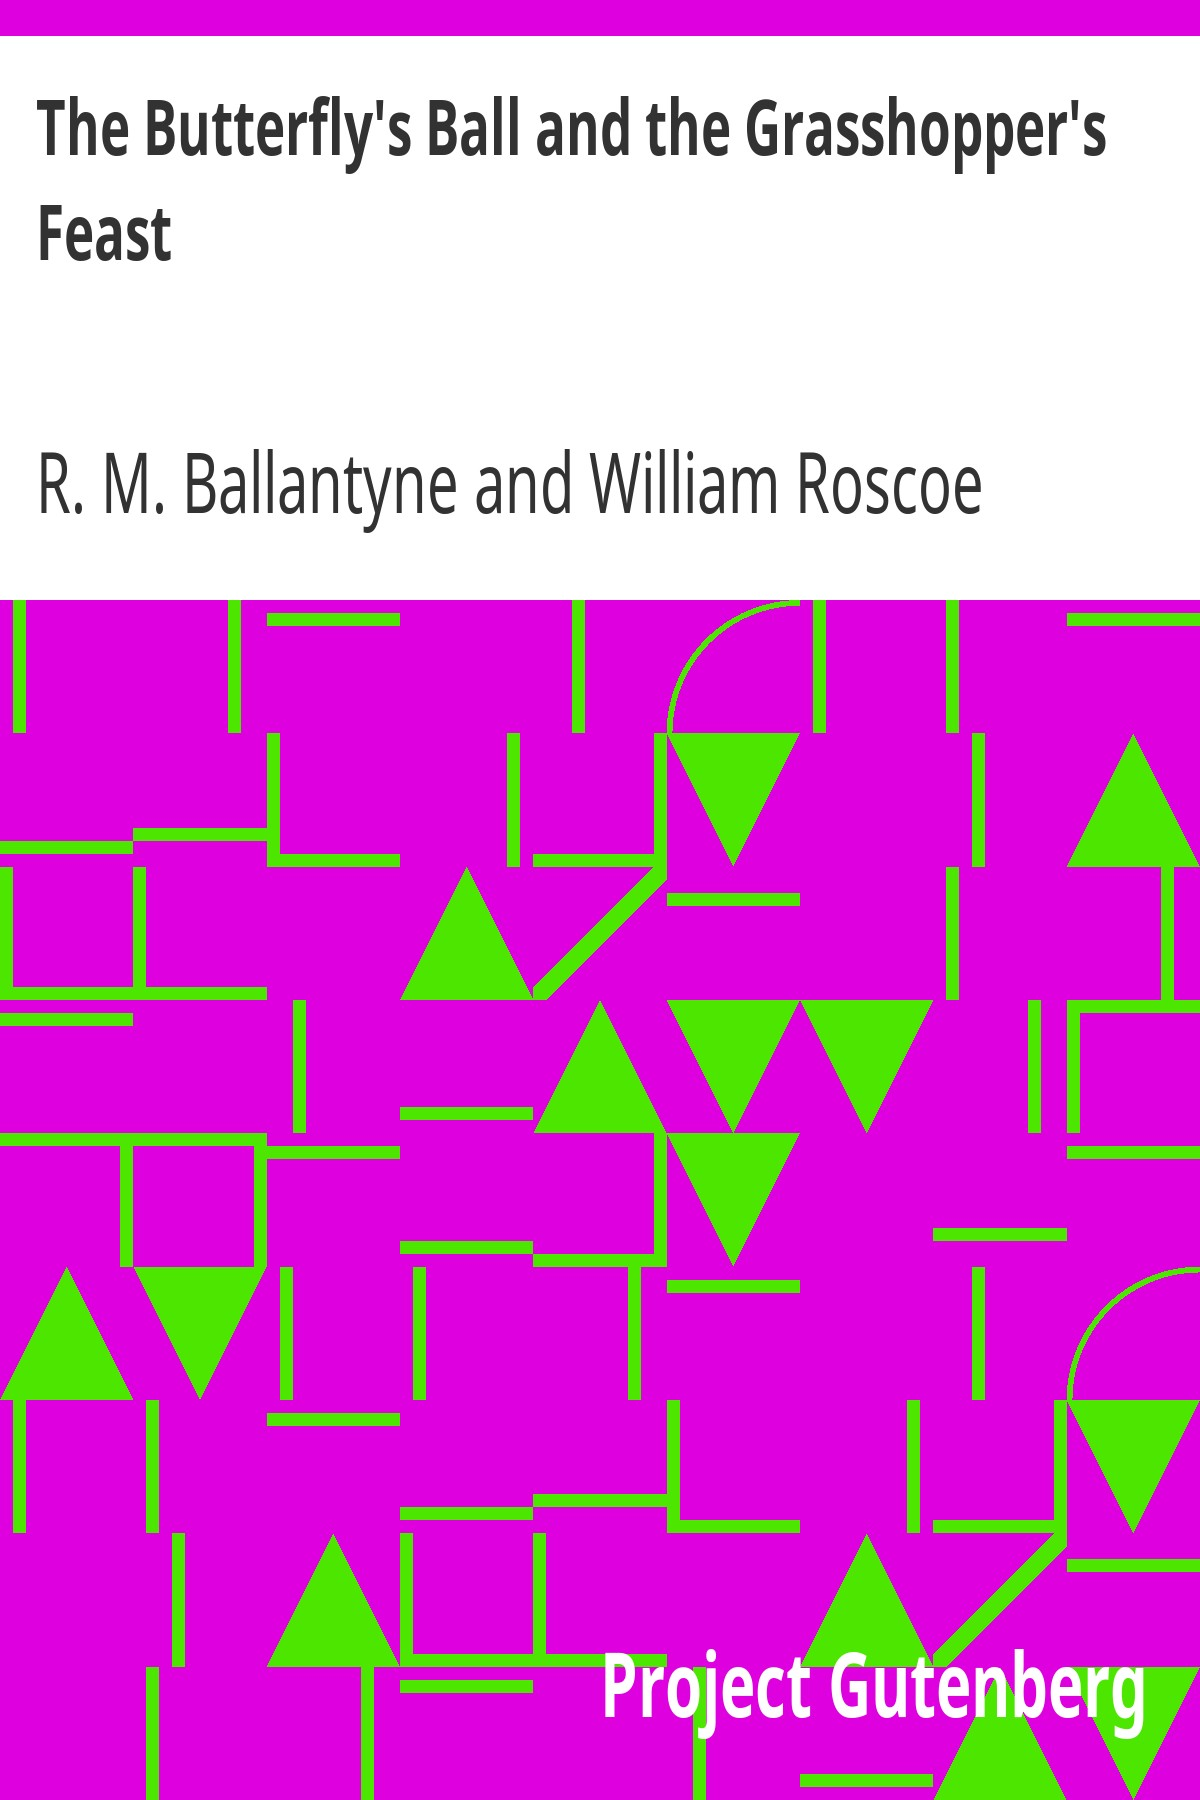 R. M. Ballantyne The Butterfly's Ball and the Grasshopper's Feast